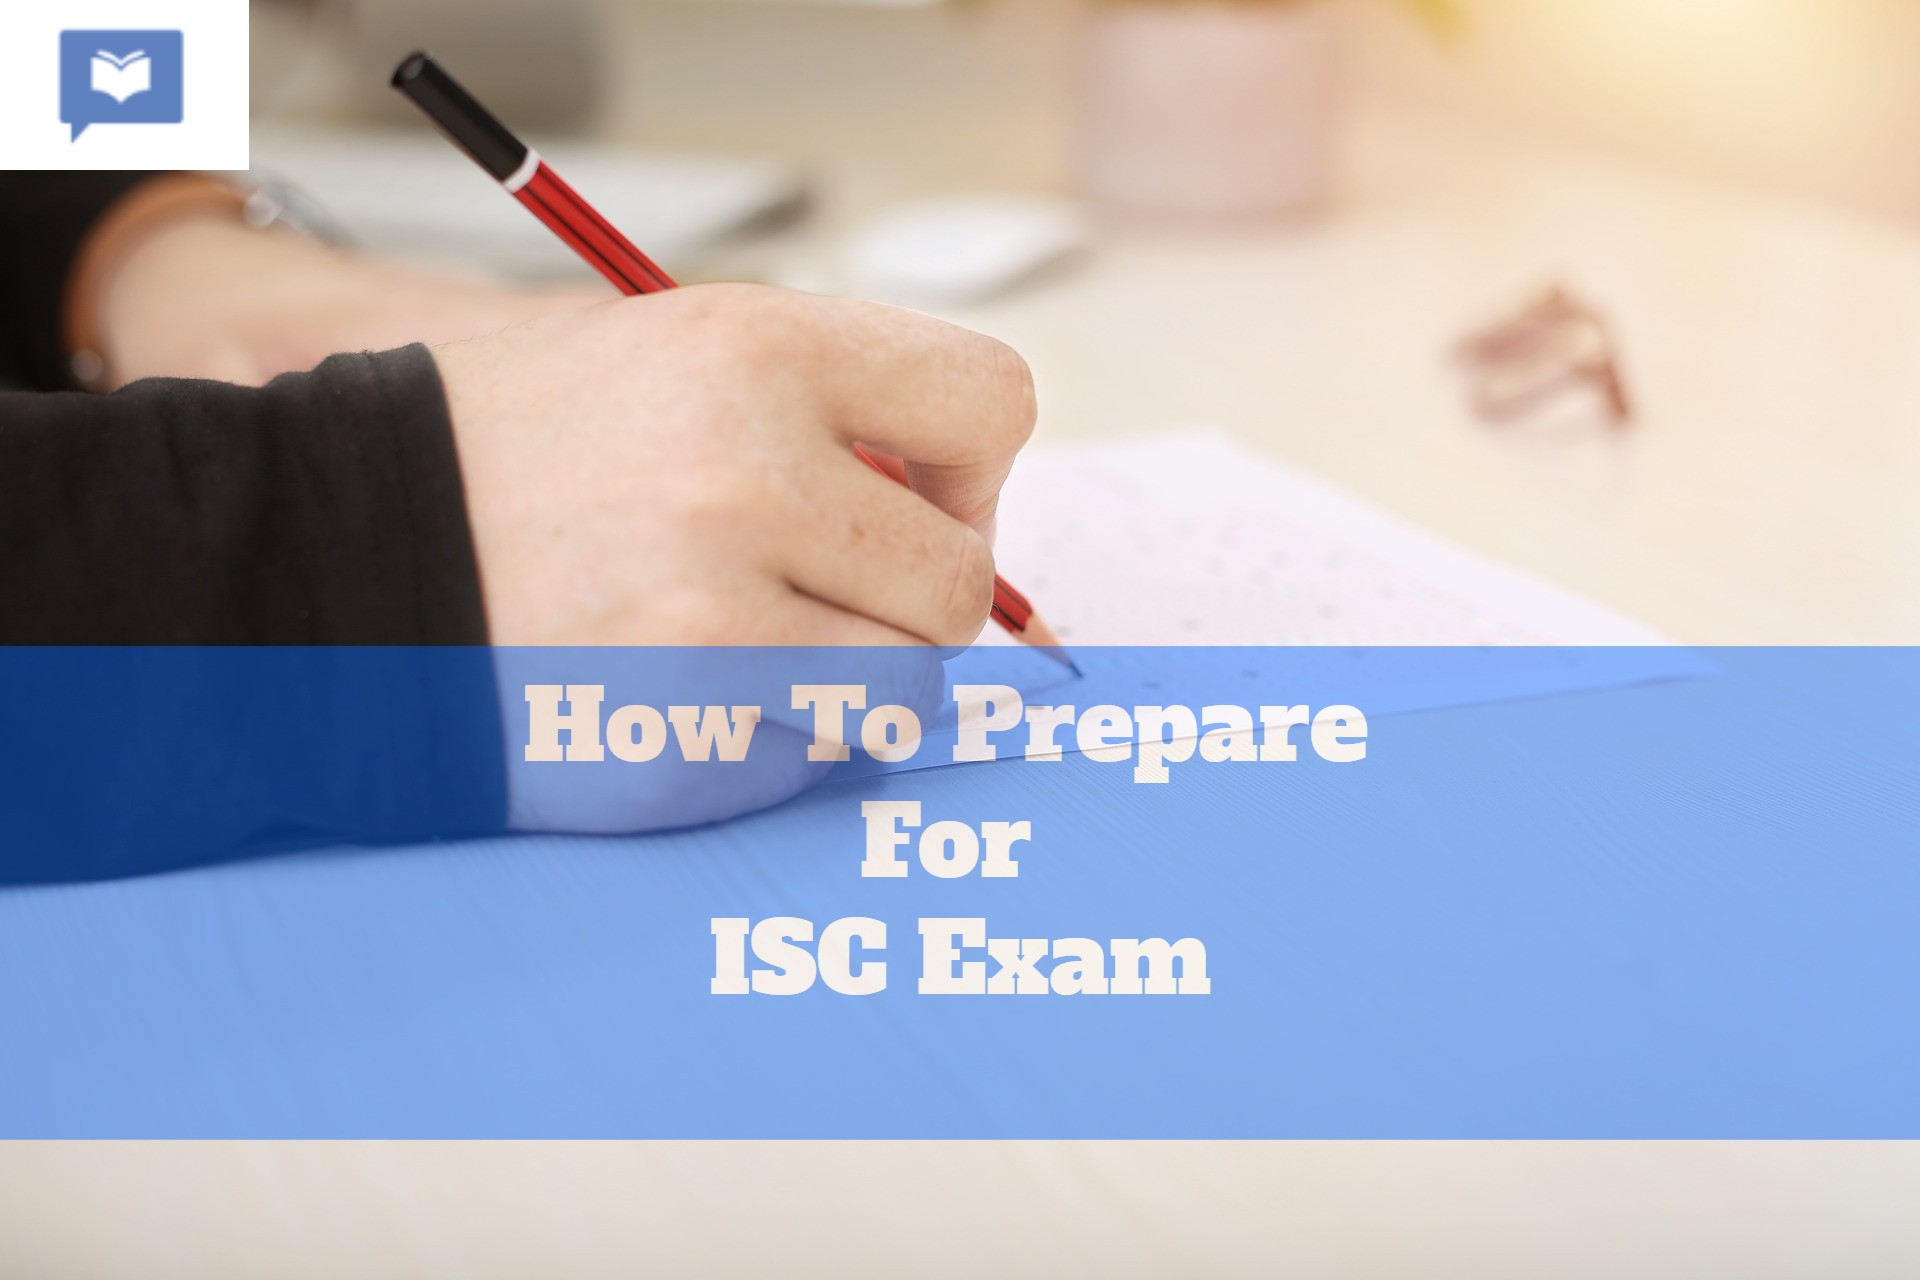 How To Prepare For ISC Exam